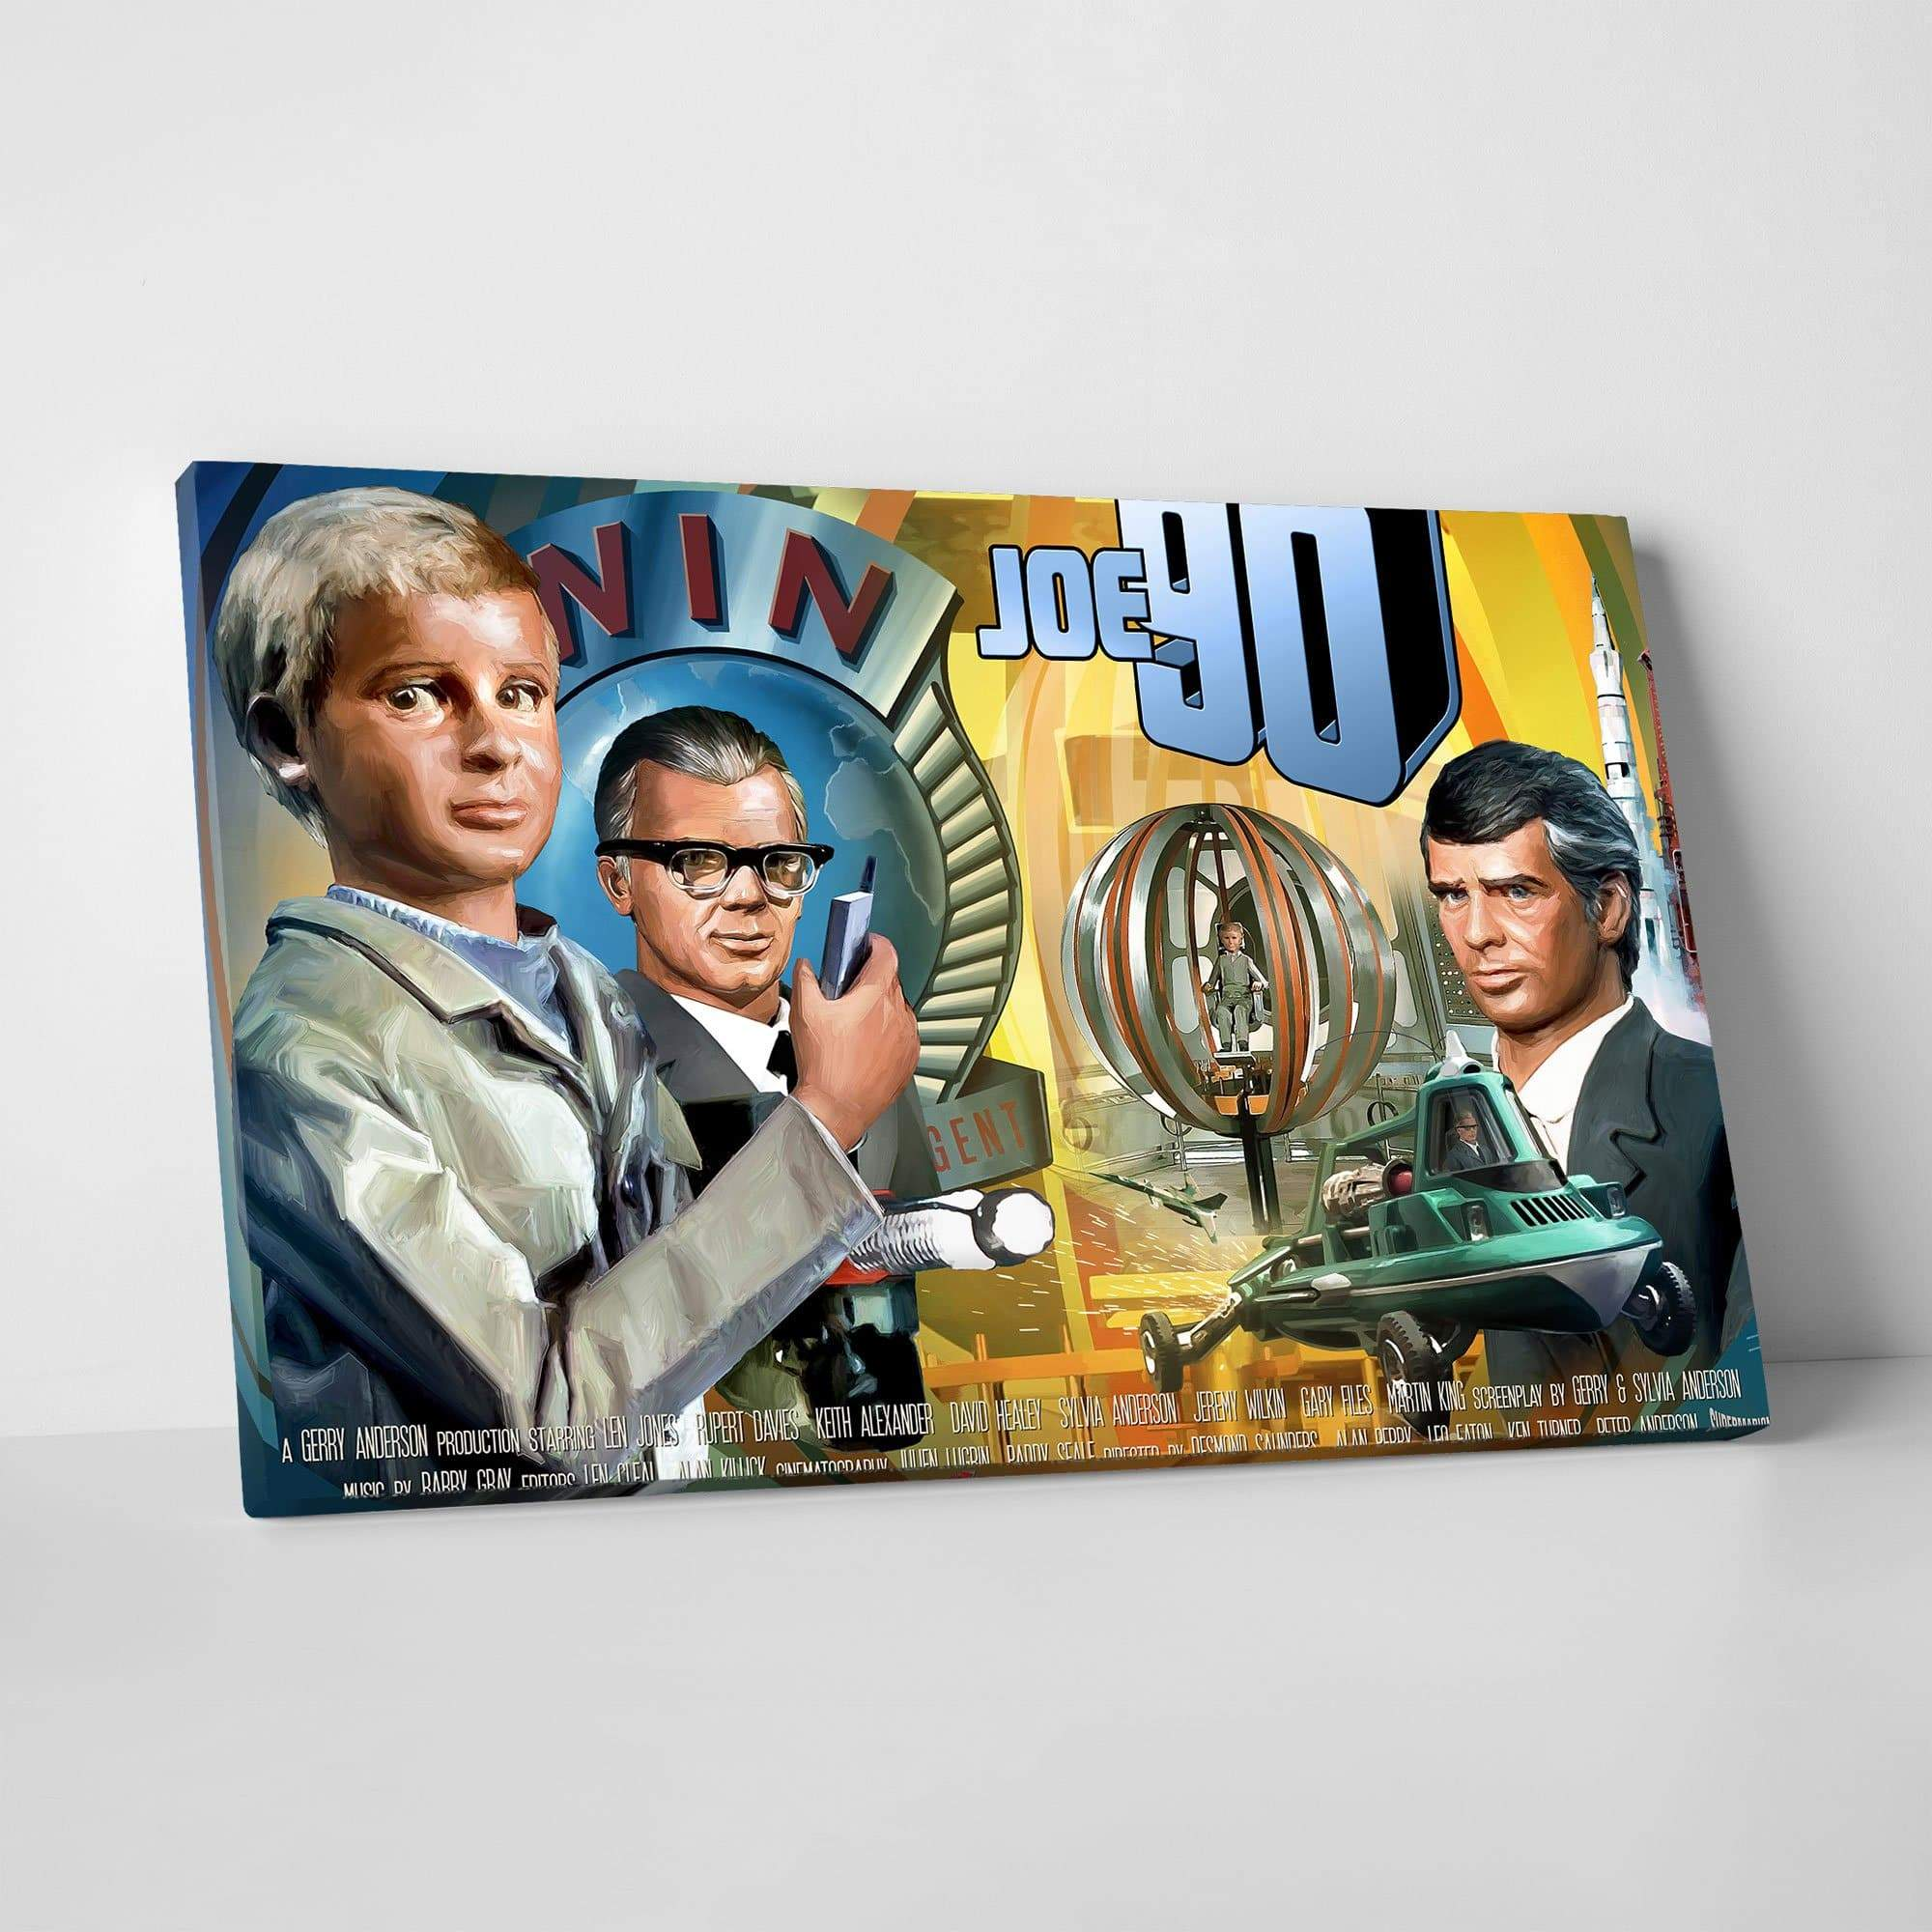 Joe 90 Canvas Print [Official & Exclusive] - The Gerry Anderson Store